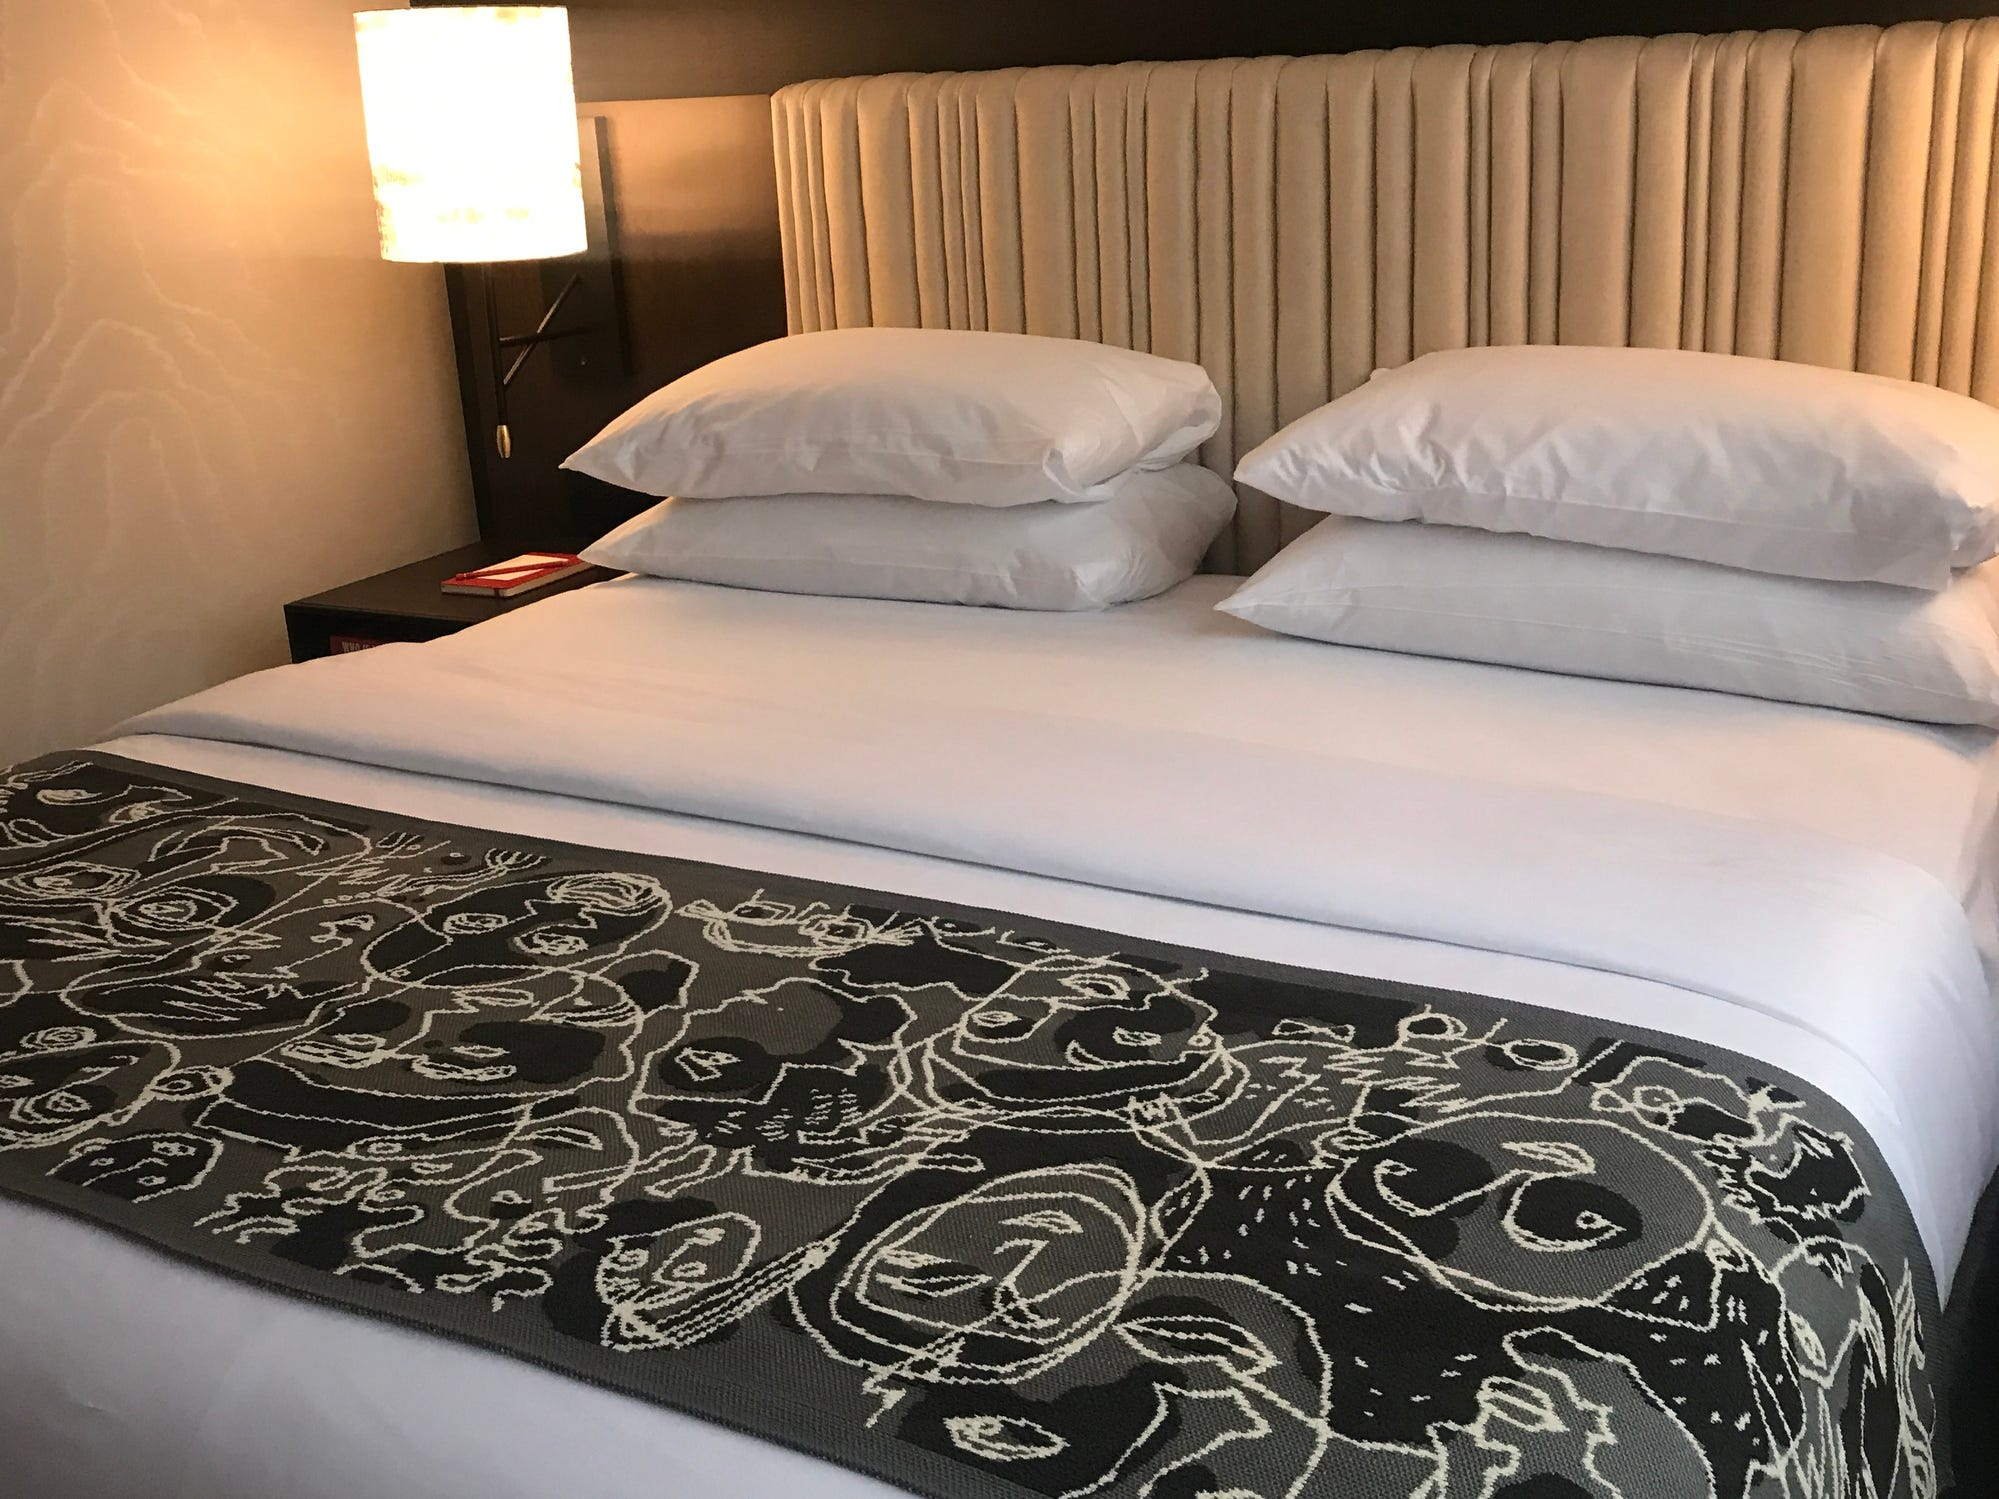 At the foot of every bed at the Saint Kate hotel will be a throw designed by Milwaukee artist Christiane Grauert.